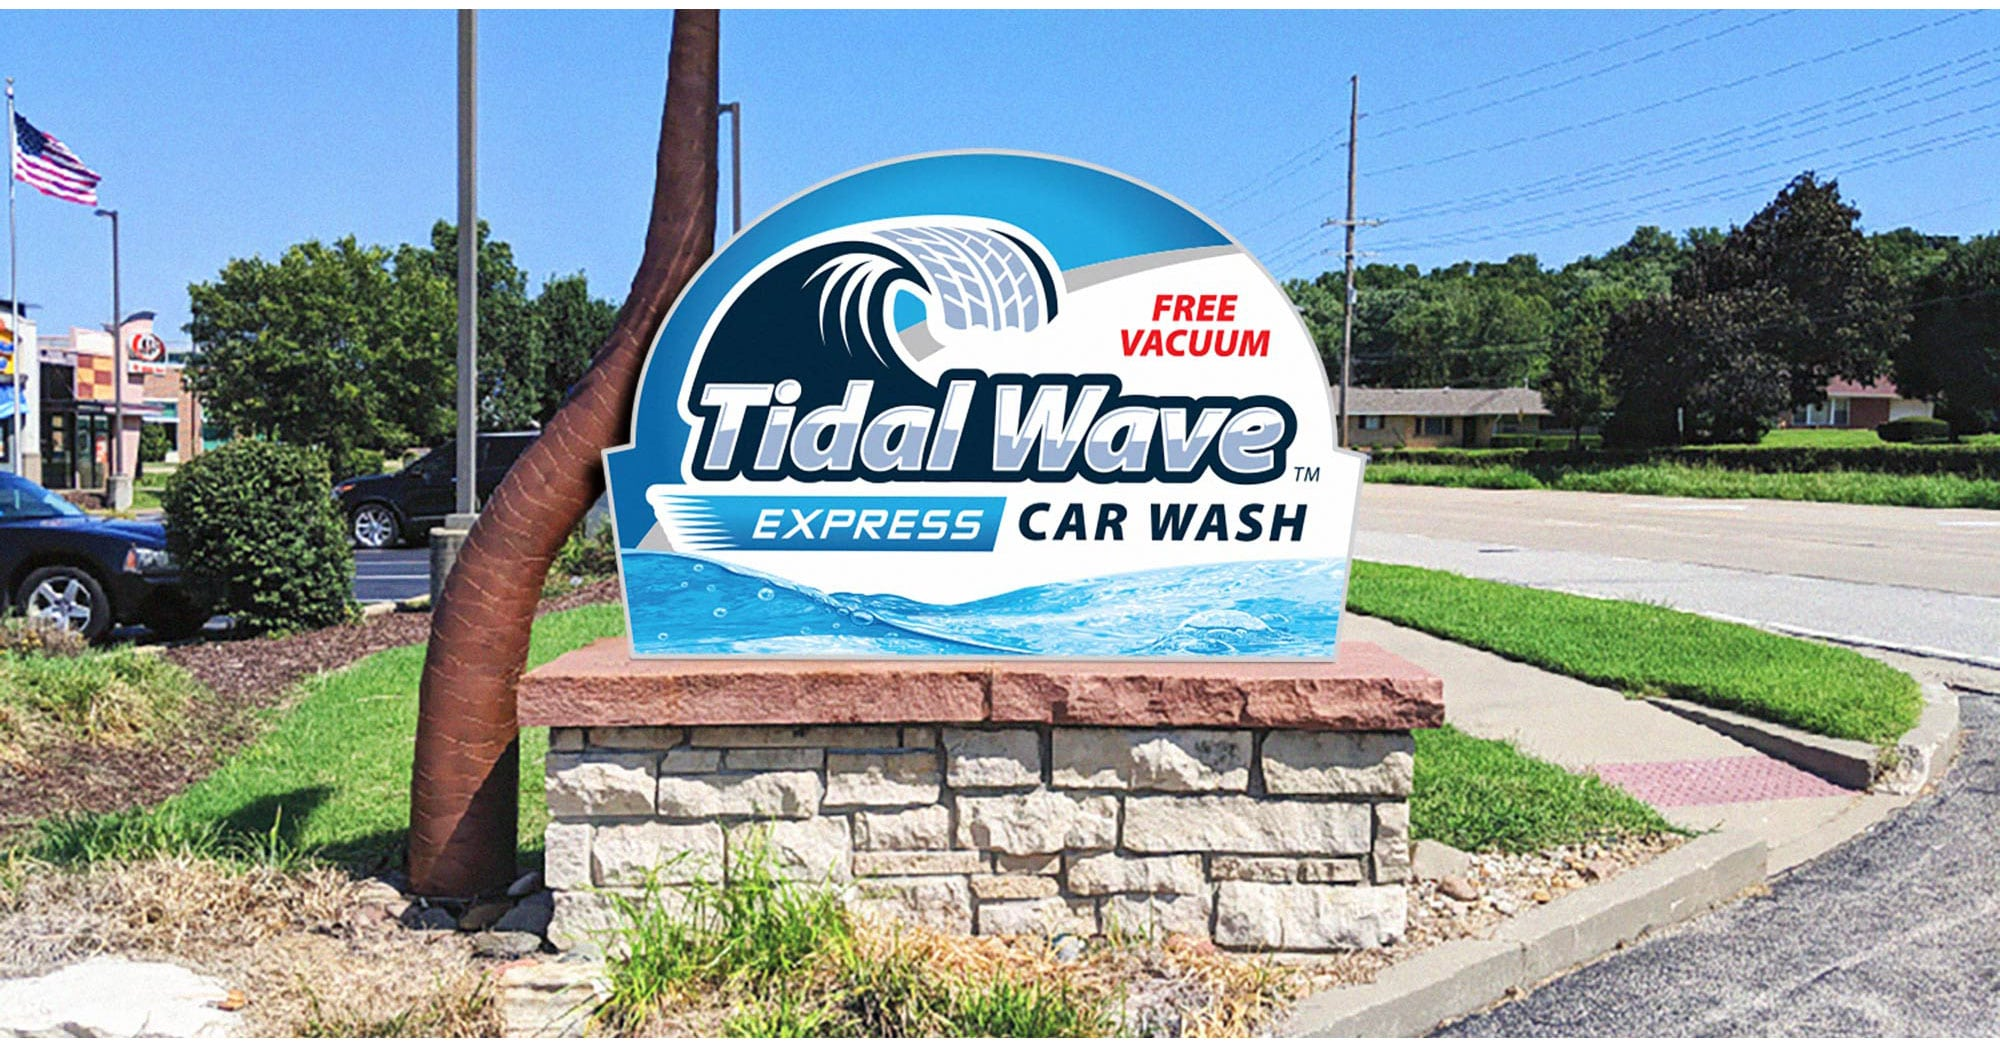 Tidal Wave Express Monument Sign Design